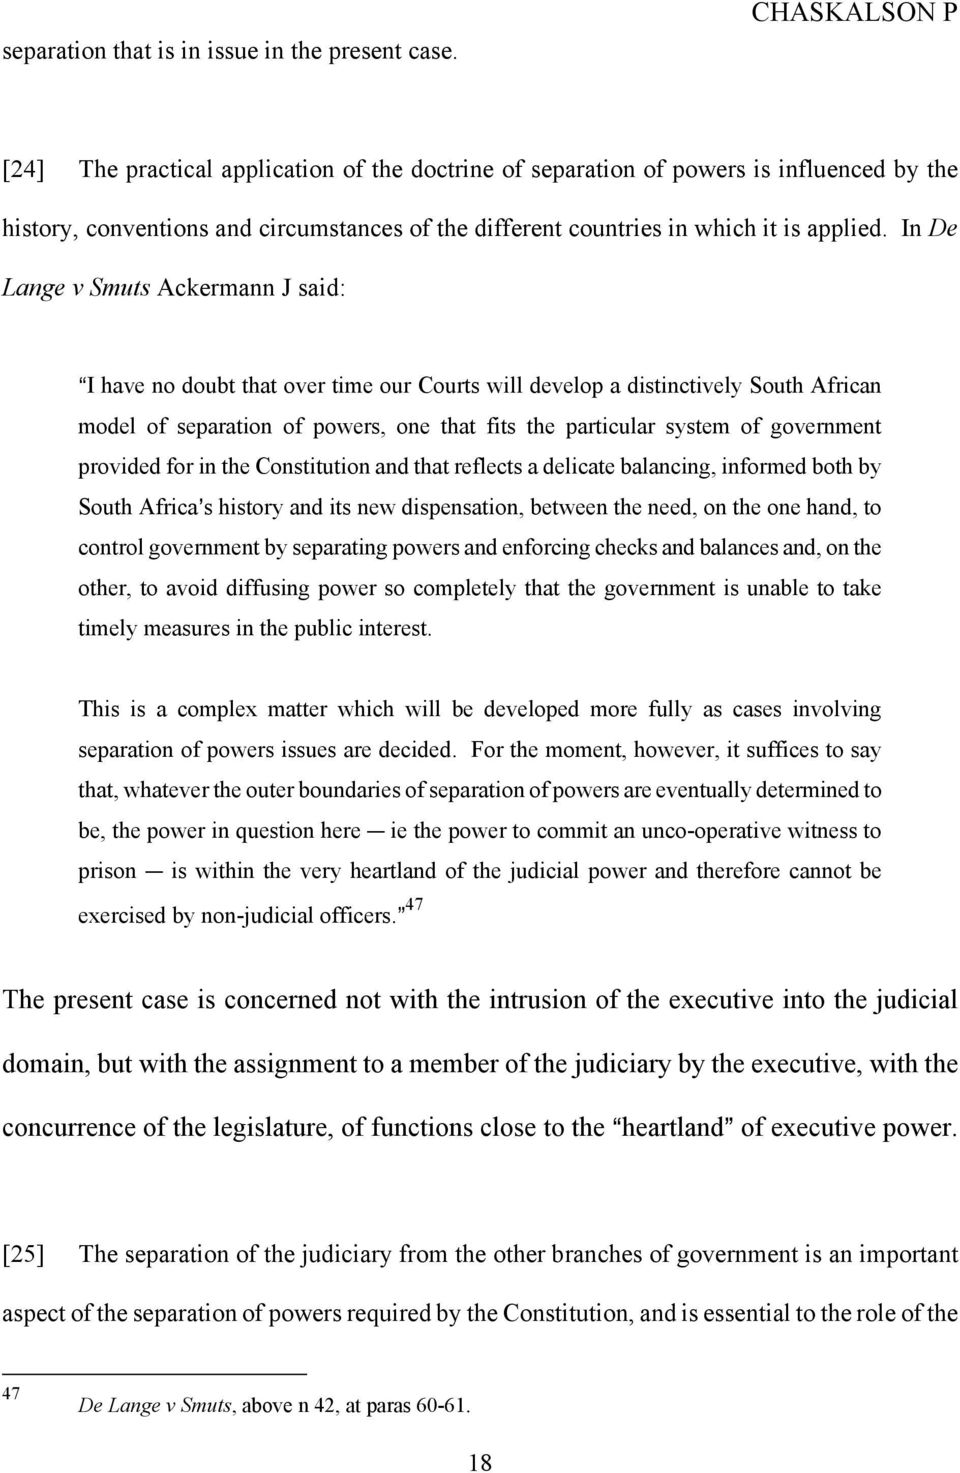 In De Lange v Smuts Ackermann J said: AI have no doubt that over time our Courts will develop a distinctively South African model of separation of powers, one that fits the particular system of